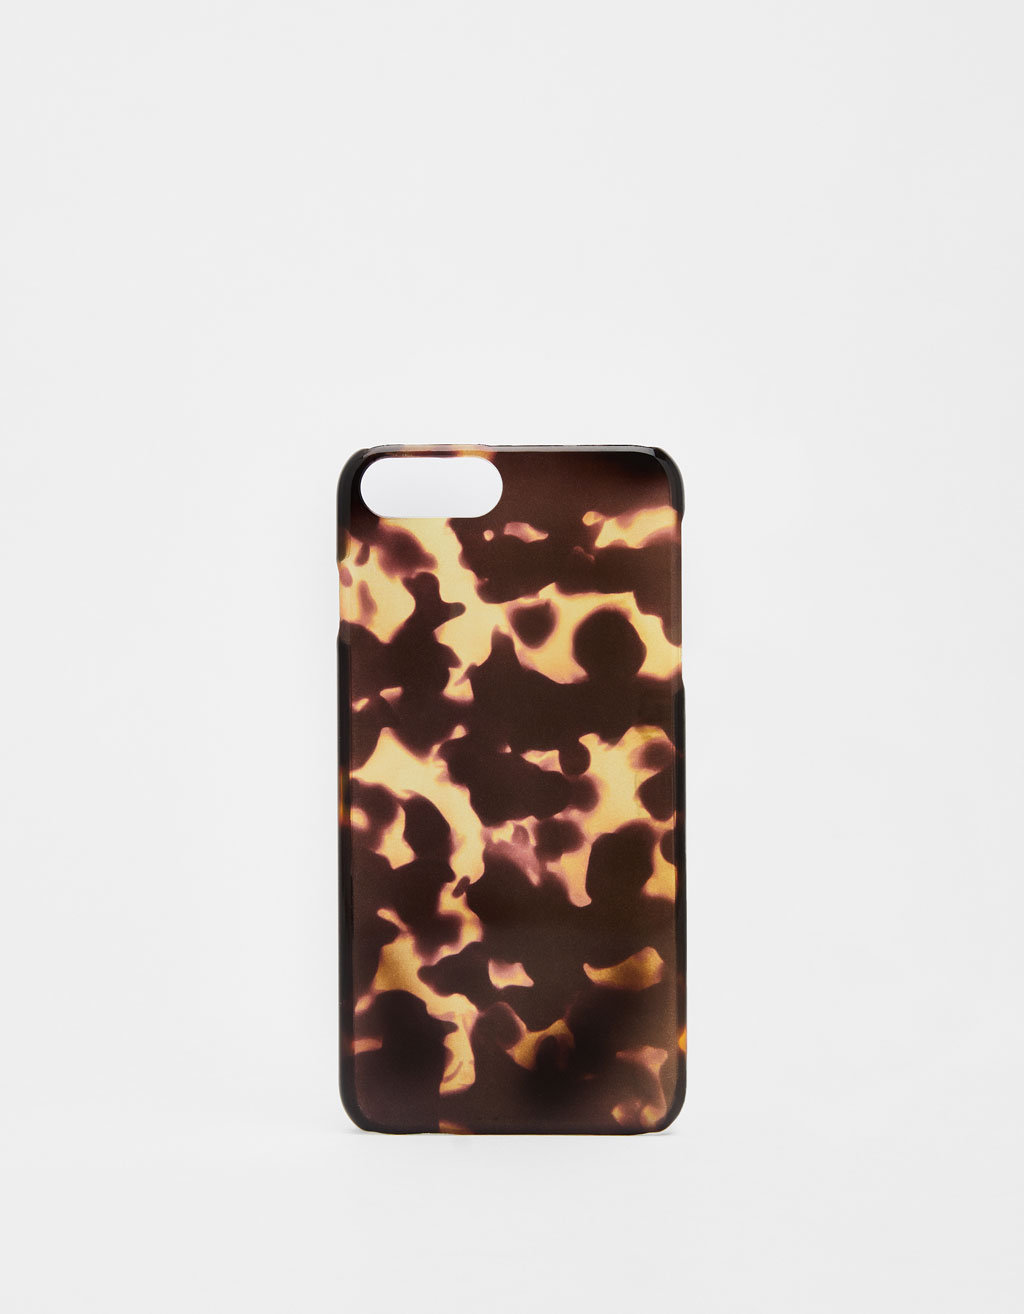 Hoesje met carey-effect voor iPhone 6 plus/7 plus/8 plus